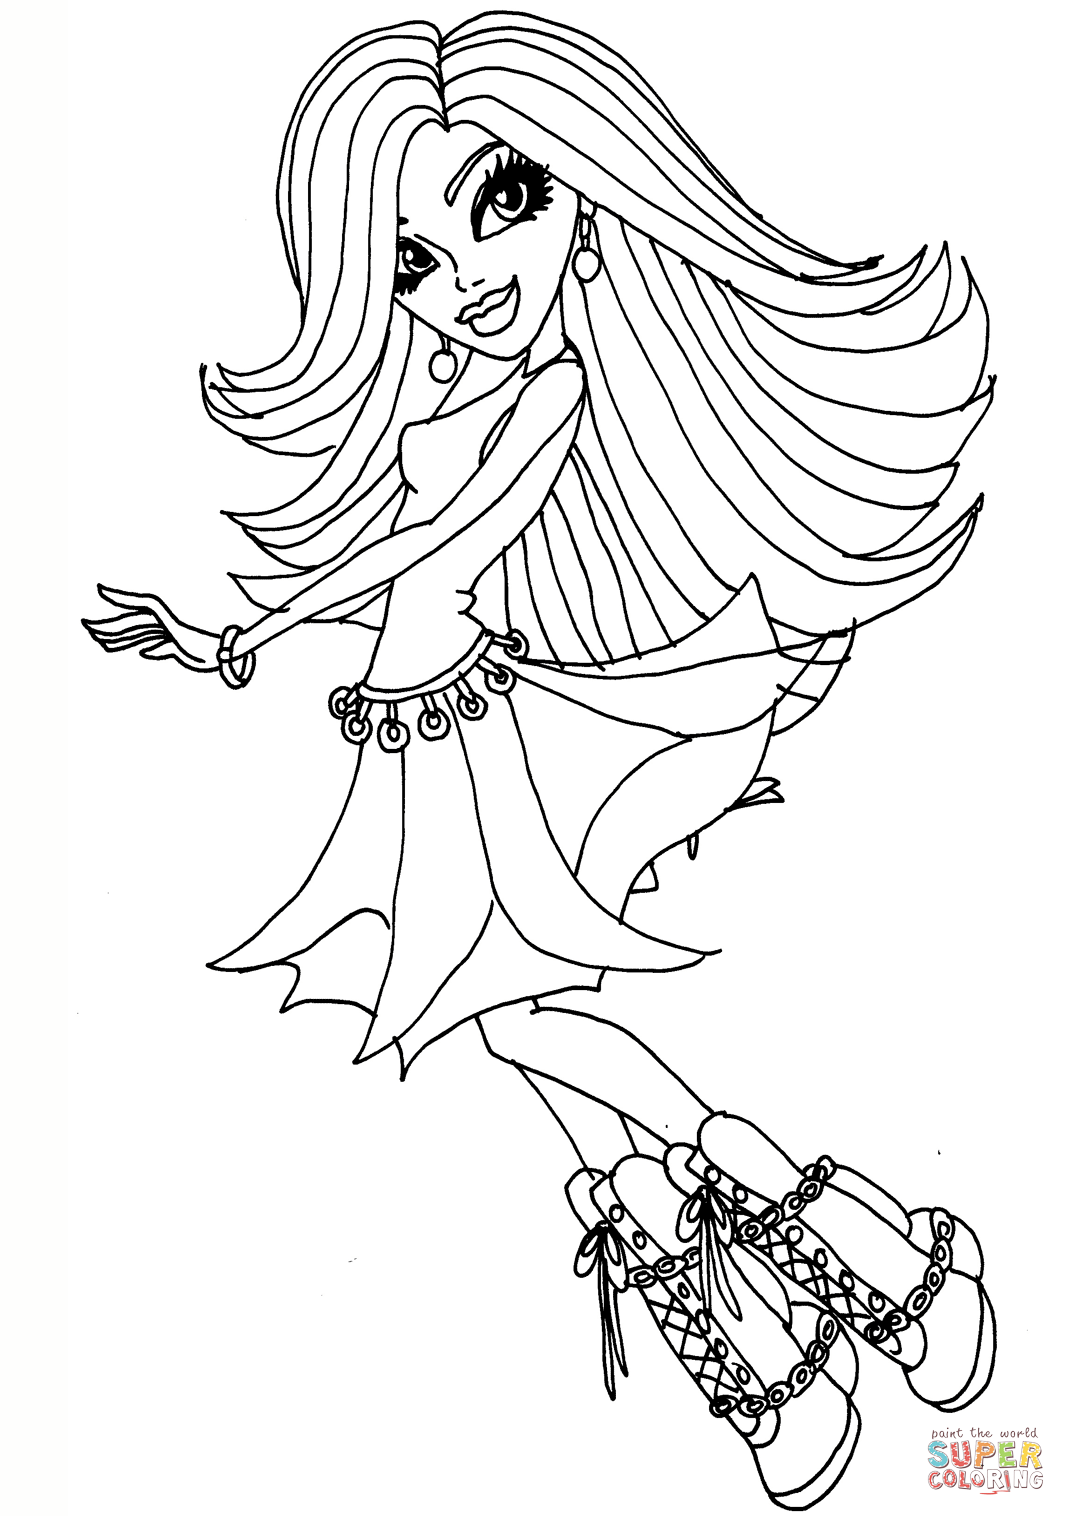 Monster High Spectra Vondergeist Doll Coloring Page